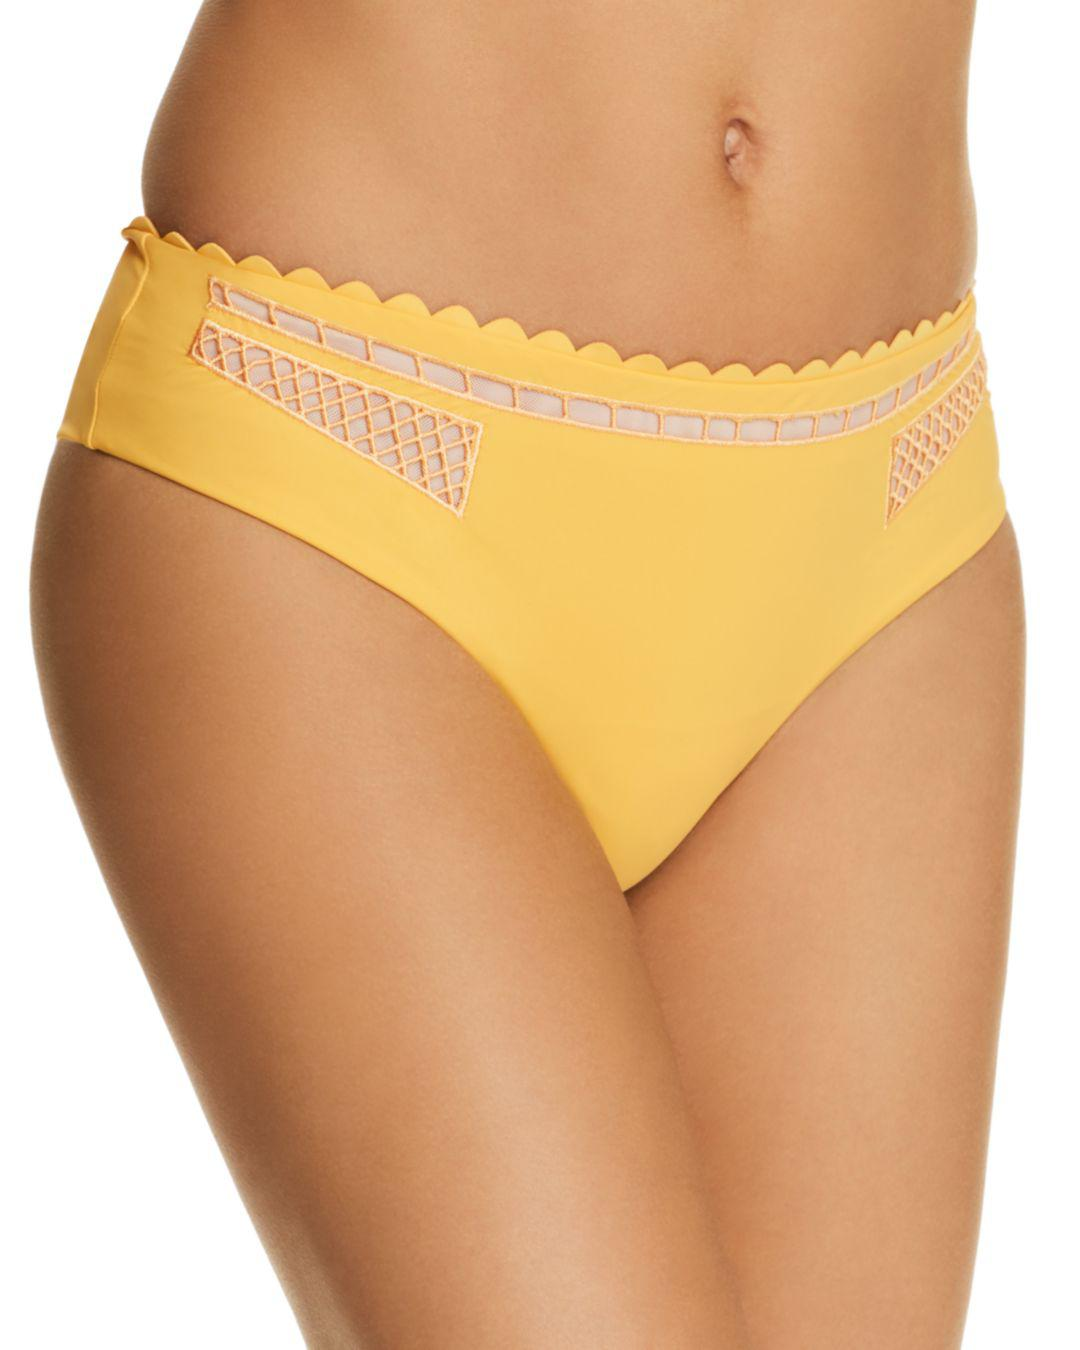 Lyst - Red Carter Peek-a-boo Bikini Bottom in Yellow f299a9e32